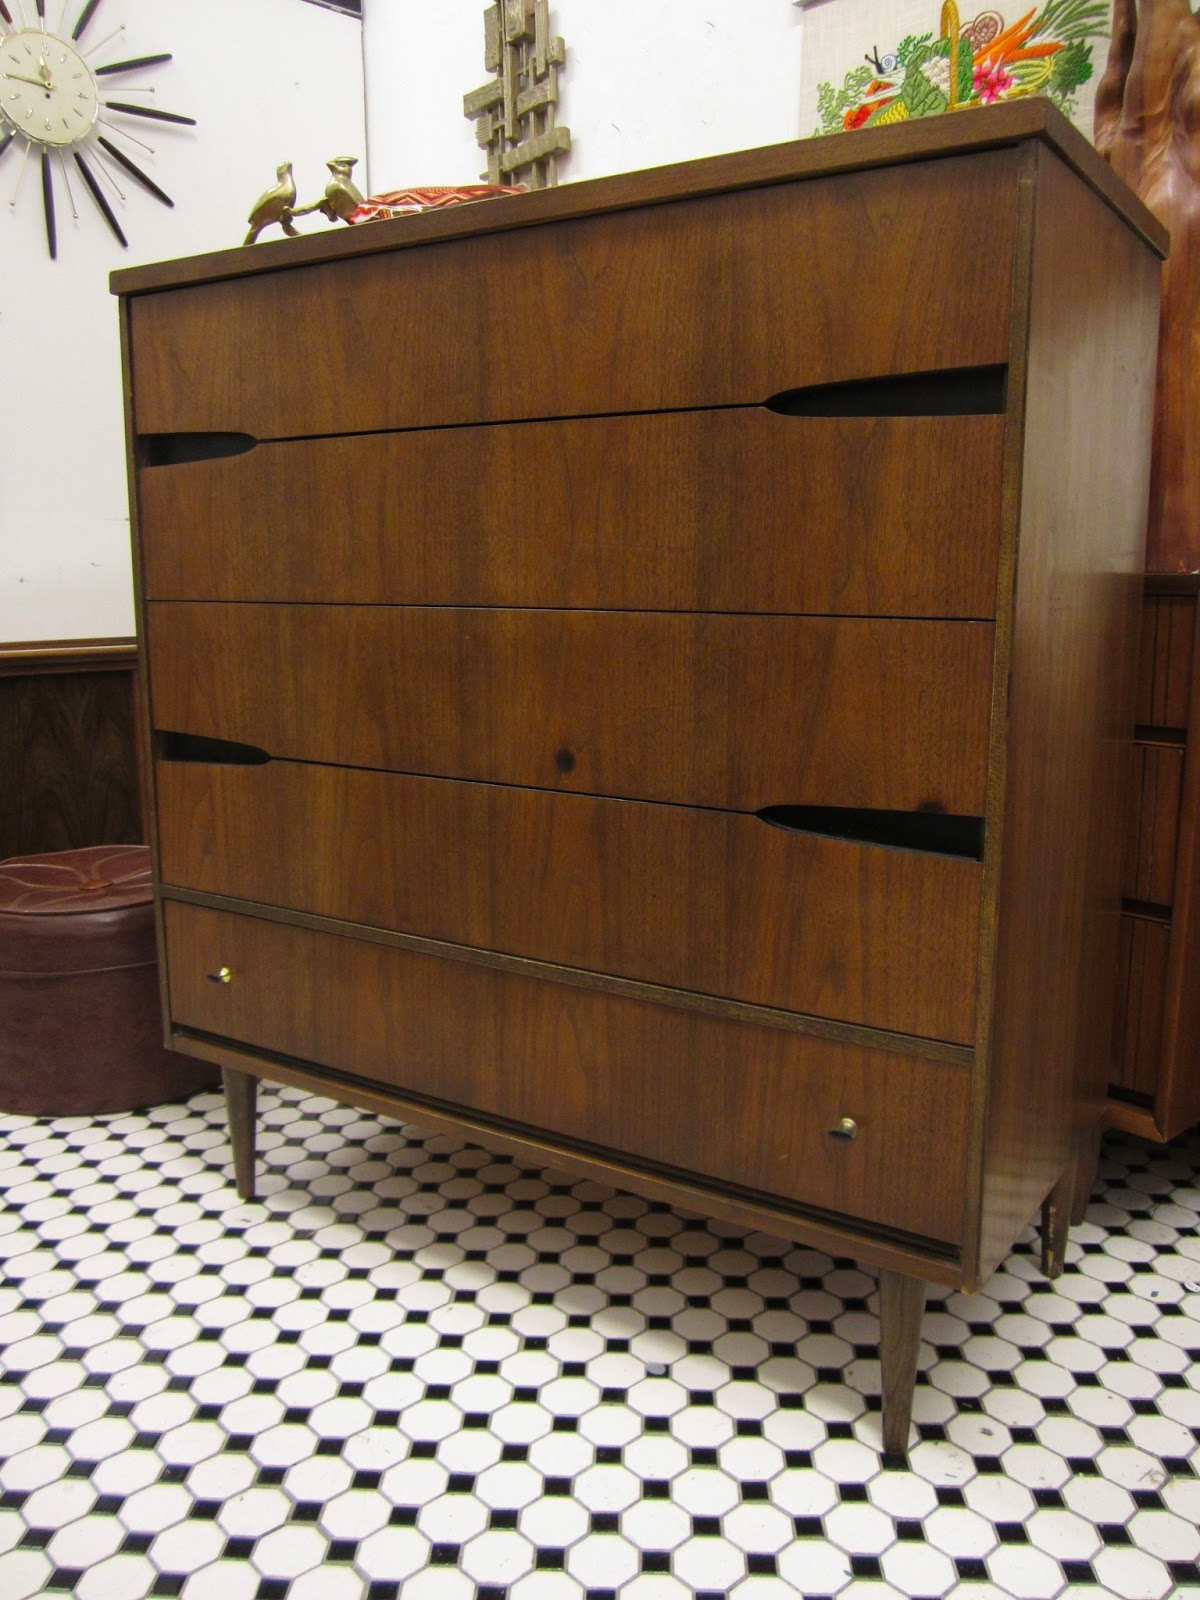 High Quality SOLD Vintage Mid Century High Boy Dresser By Bassett Furniture $240